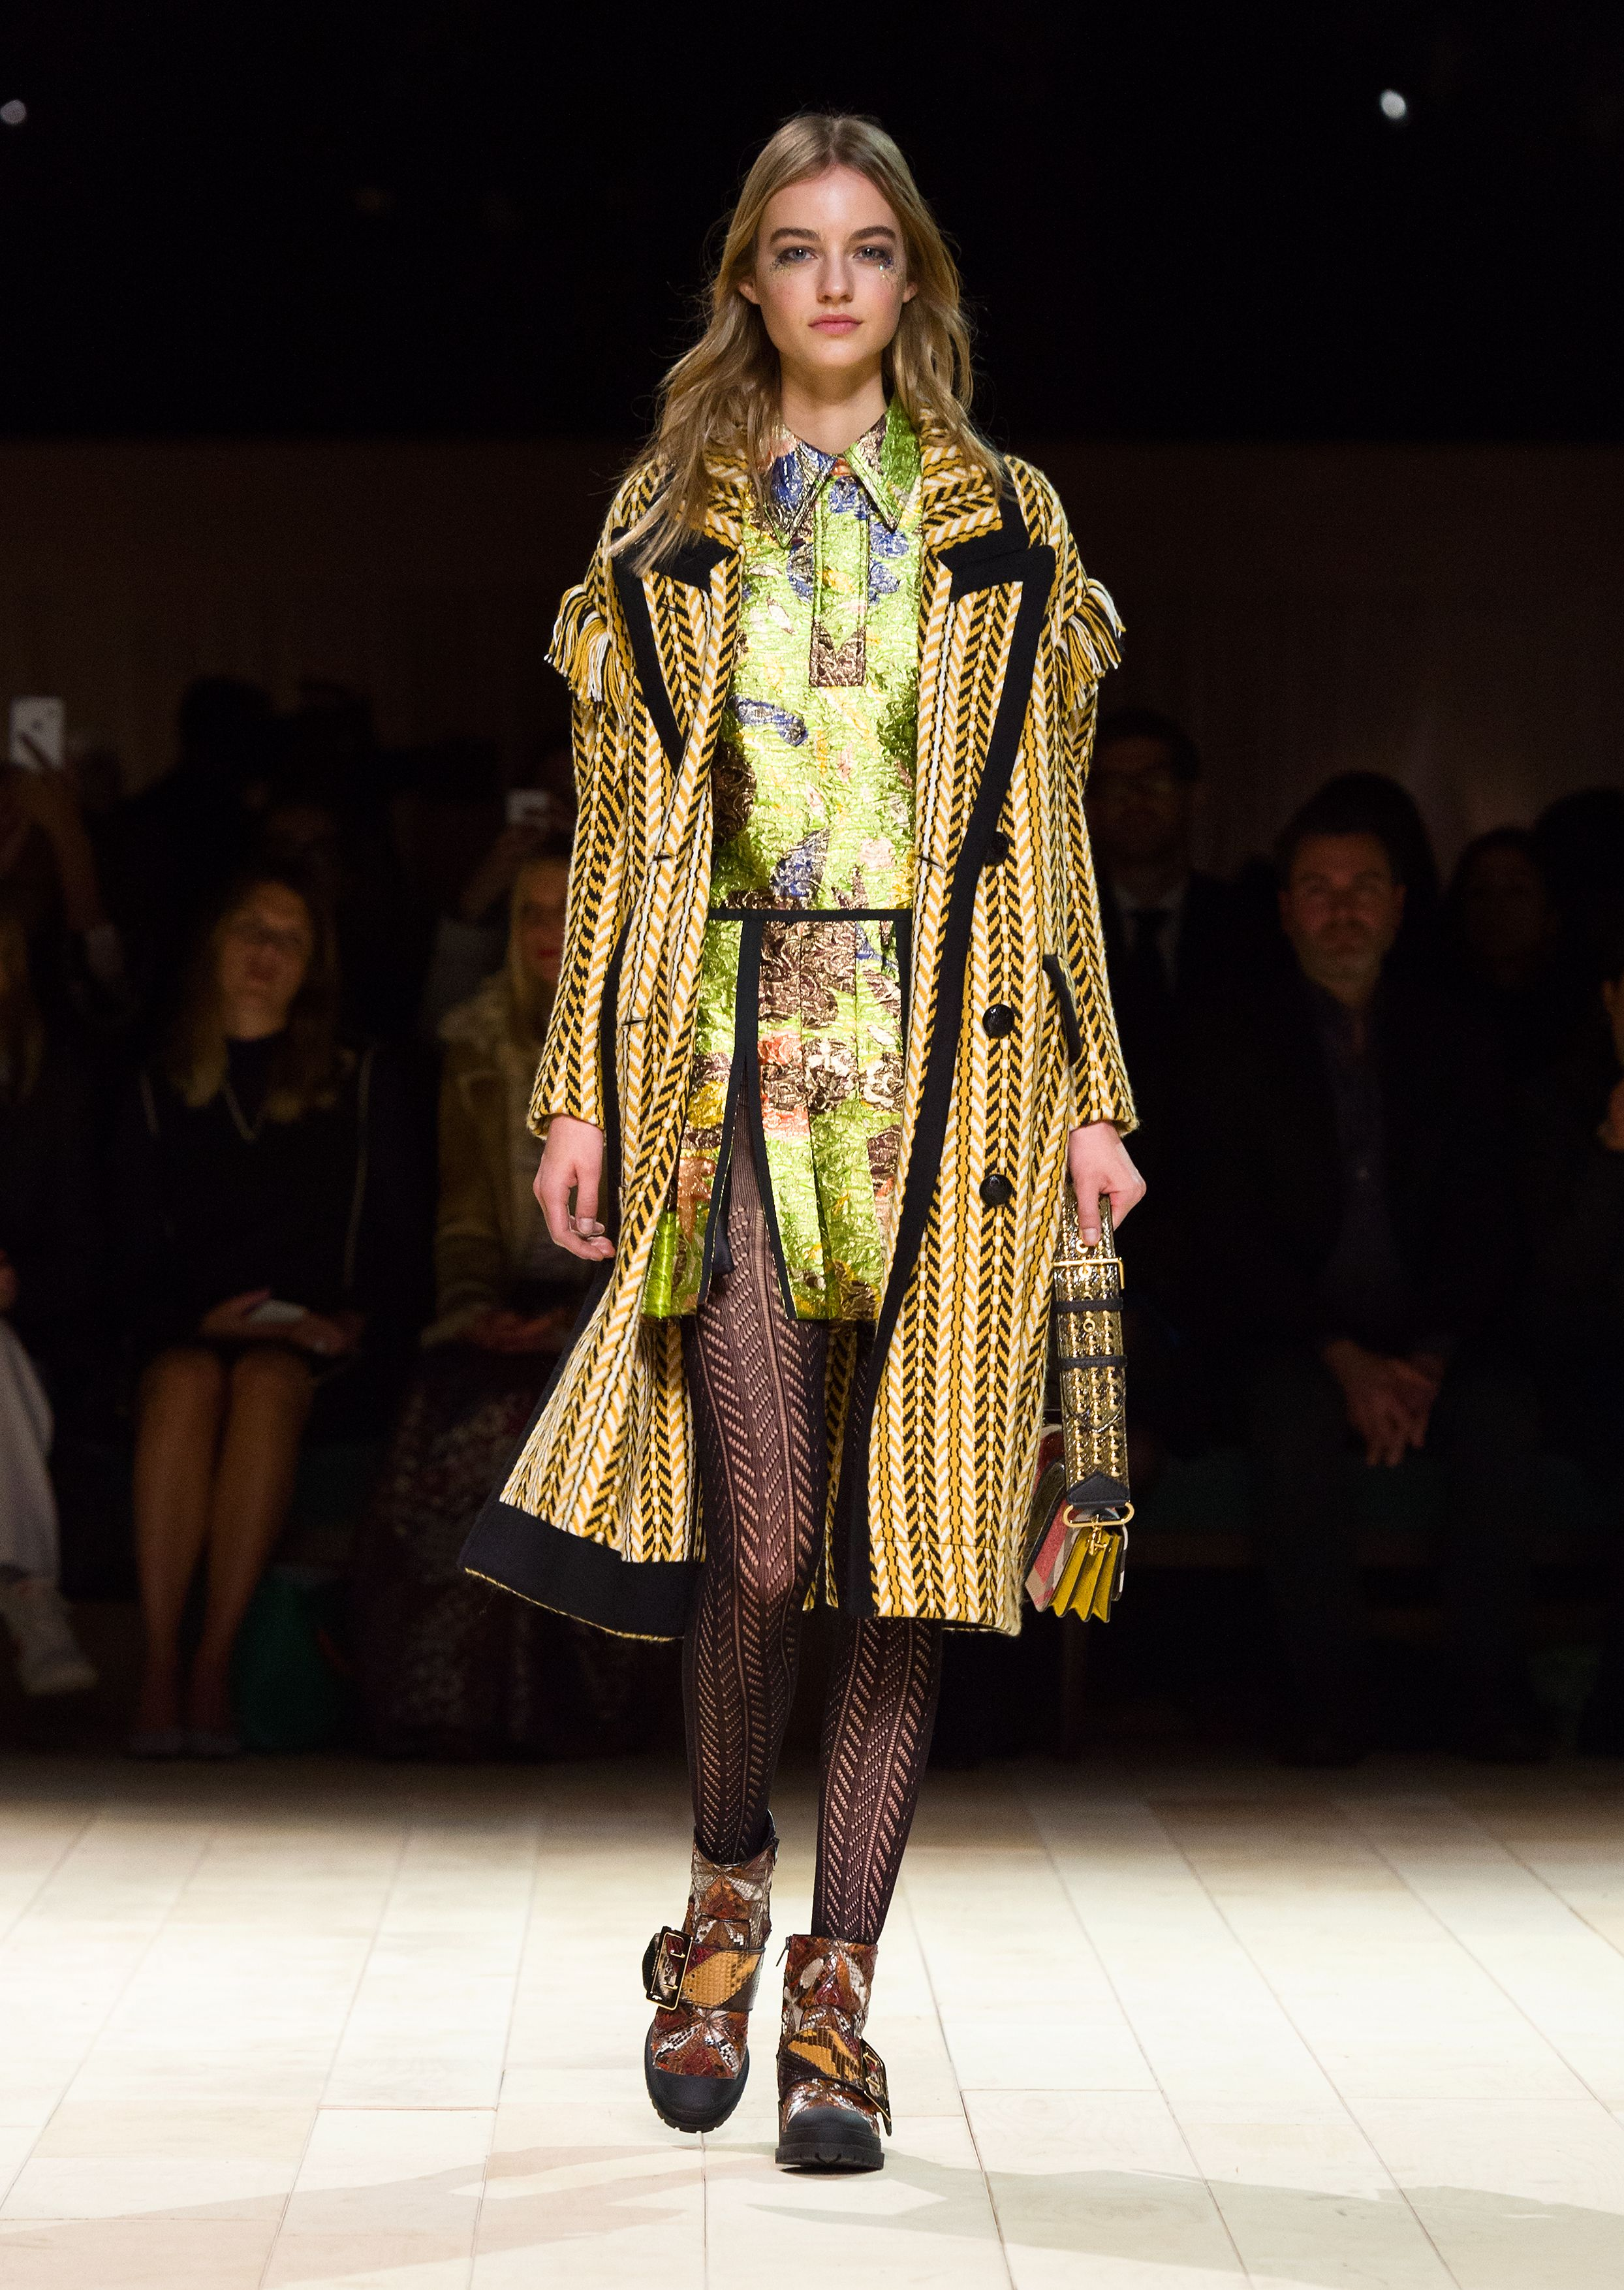 The Fringe Coat in ochre yellow herringbone wool silk, worn over a jacquard dress and styled with The Patchwork bag and The Buckle Boot. Discover the collection at Burberry.com